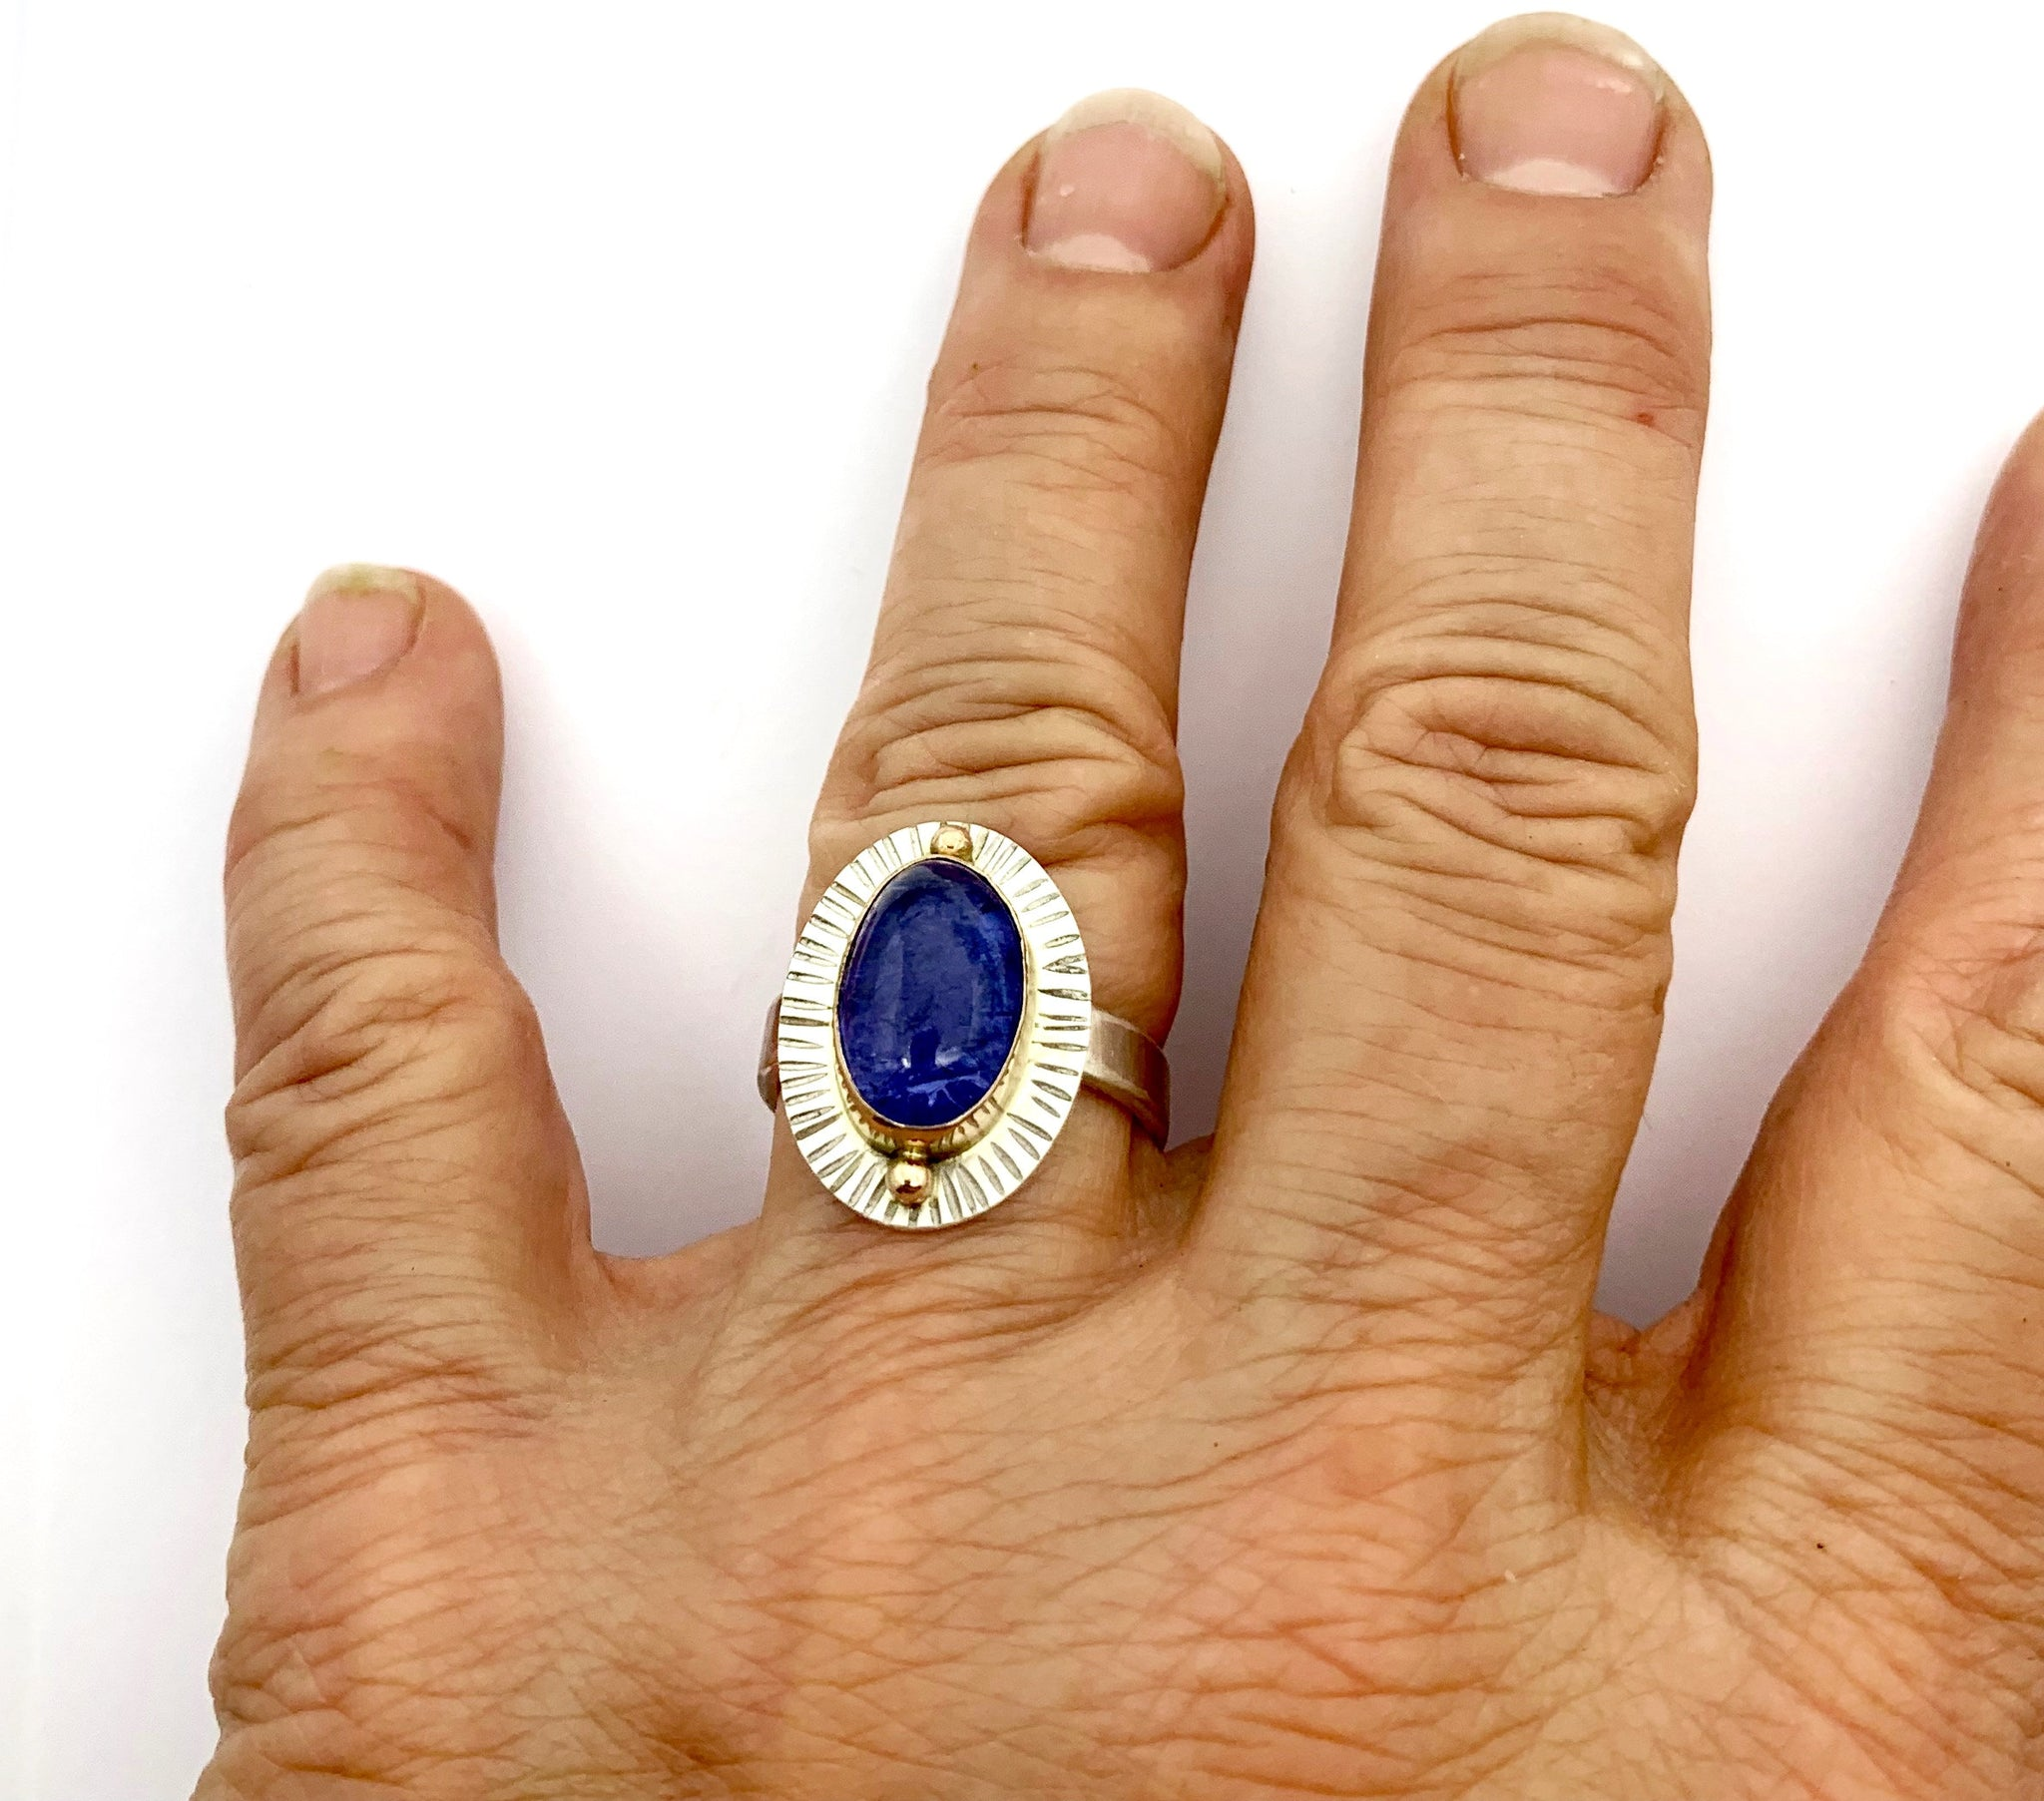 Tanzanite Ring with 14k bezel and details,  Tanzanite Ring in Gold and Silver, Gemstone Ring with